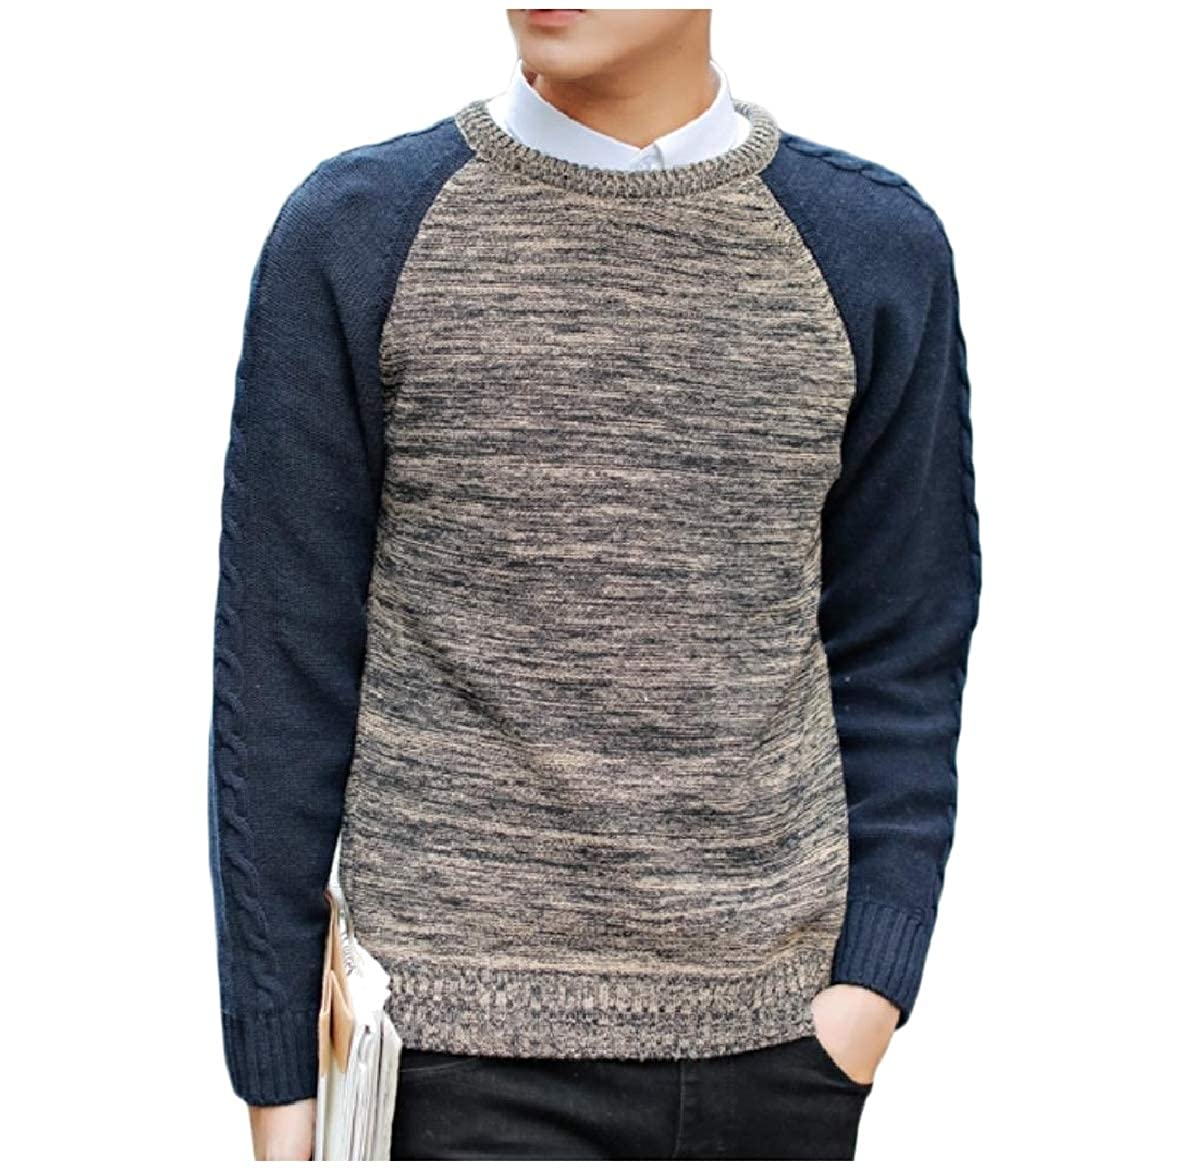 Tootless-Men Assorted Colors Loose Casual Knit Jumper O-Neck Knitwear